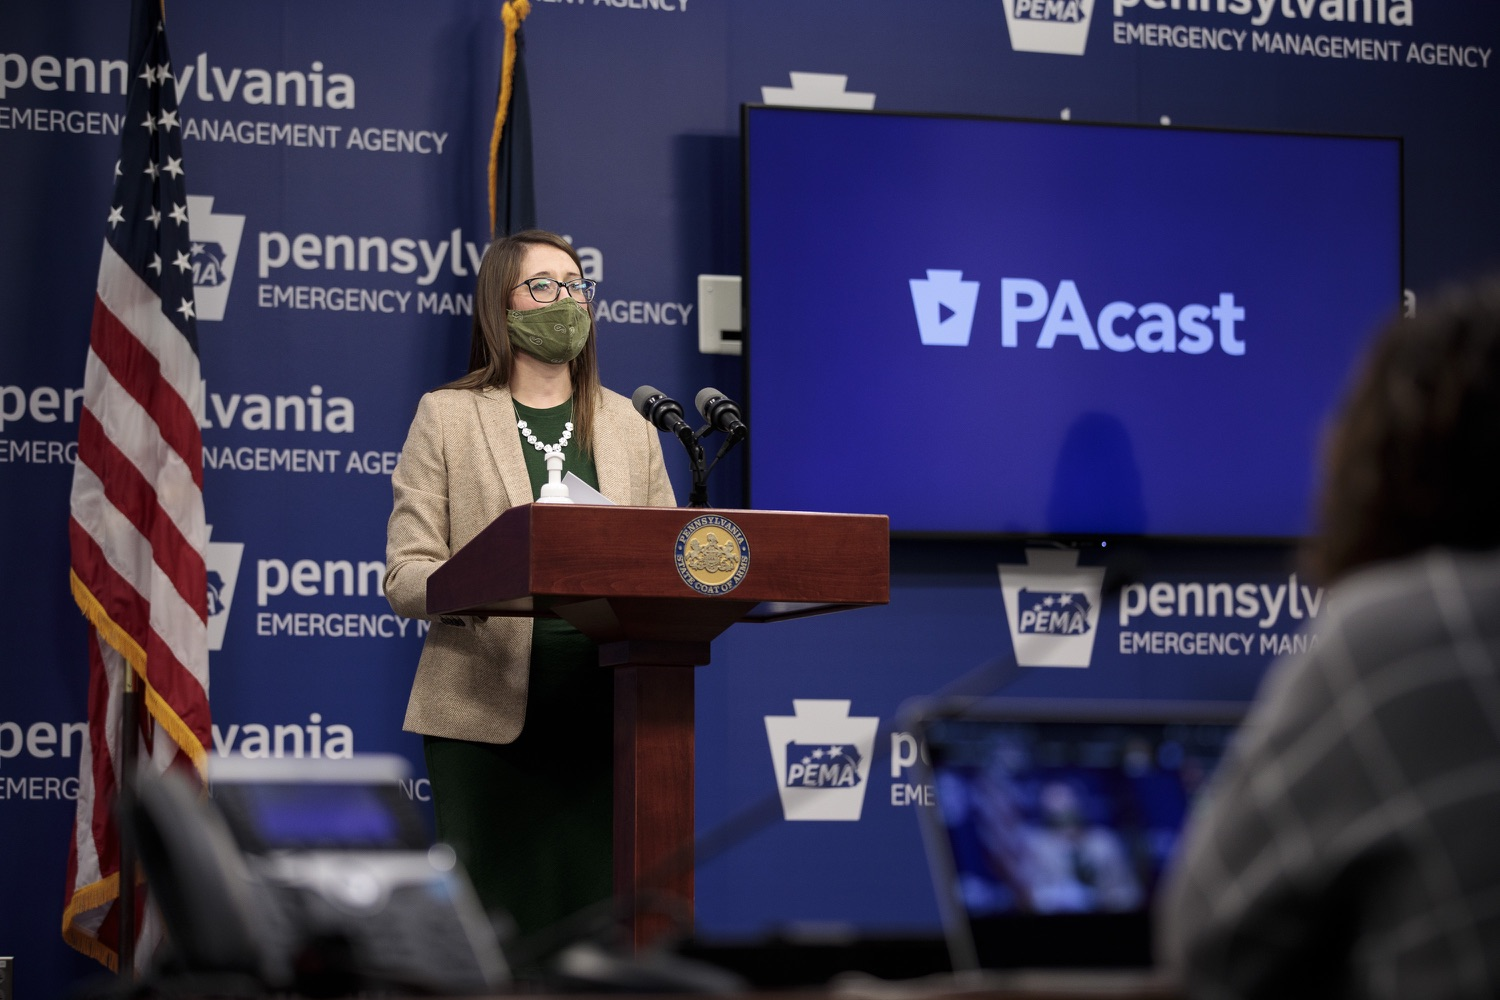 """<a href=""""https://filesource.wostreaming.net/commonwealthofpa/photo/18524_doh_vaccine_dz_07.JPG"""" target=""""_blank"""">⇣Download Photo<br></a>Department of Health Senior Advisor Lindsey Mauldin speaking at the press conference.  The Pennsylvania Department of Health today launched a new tool called Your Turn to help Pennsylvanians understand where they fall in the vaccine prioritization effort and to be alerted when it is their turn to schedule an appointment for the COVID-19 vaccine.  Harrisburg, PA  February 9, 2021"""